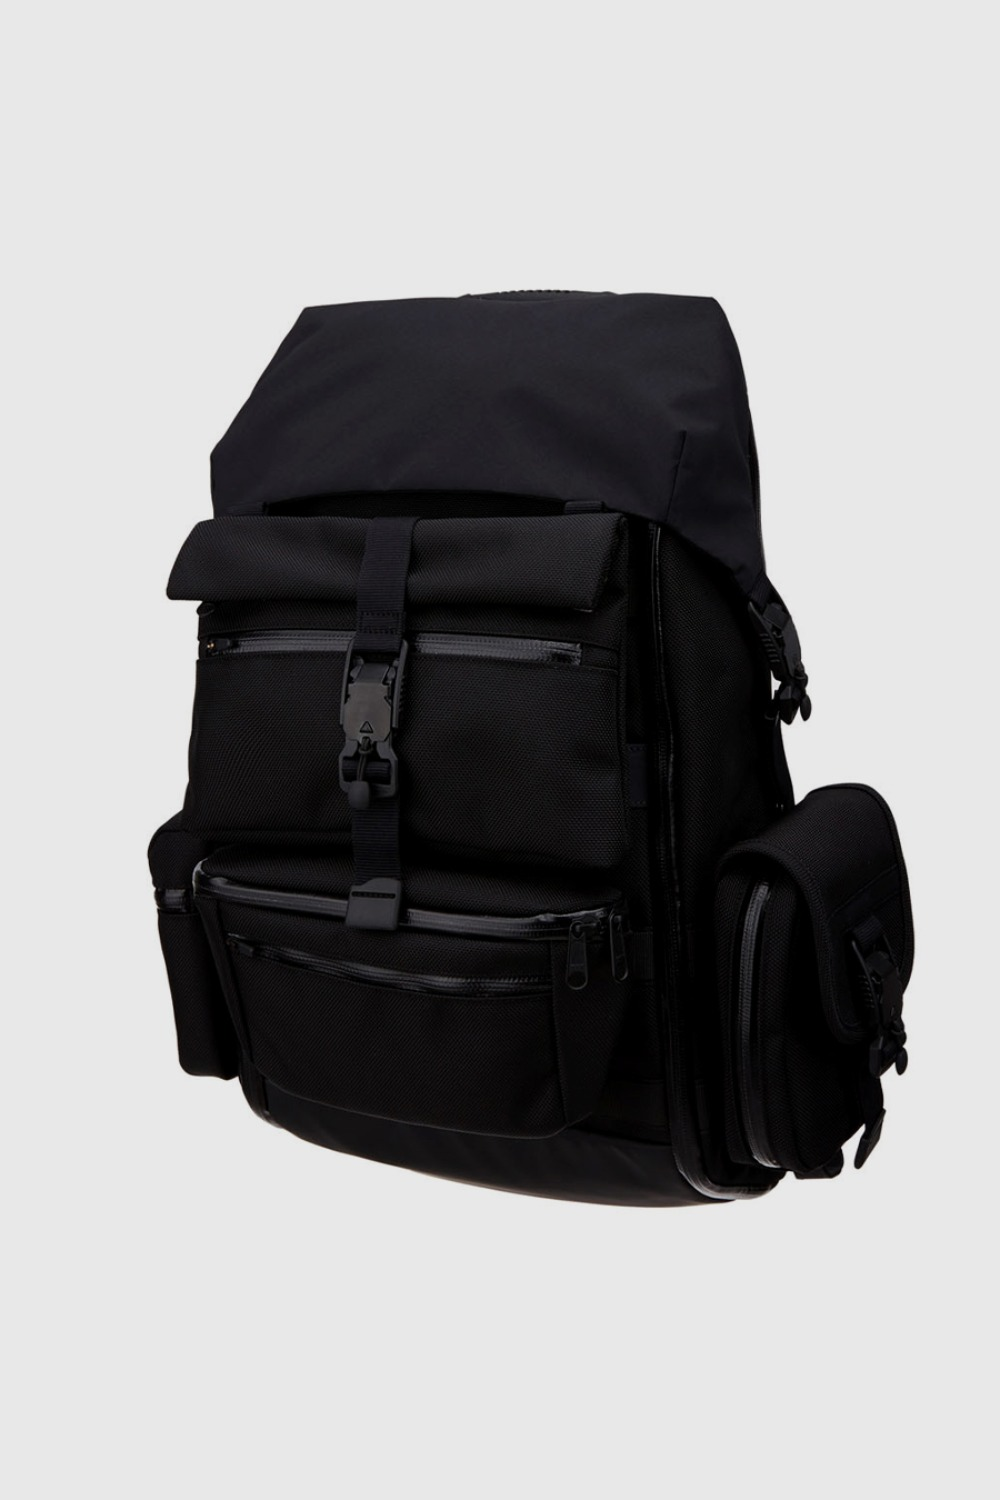 LOAD-OUT BACKPACK(ZUBBX21007) BLACK